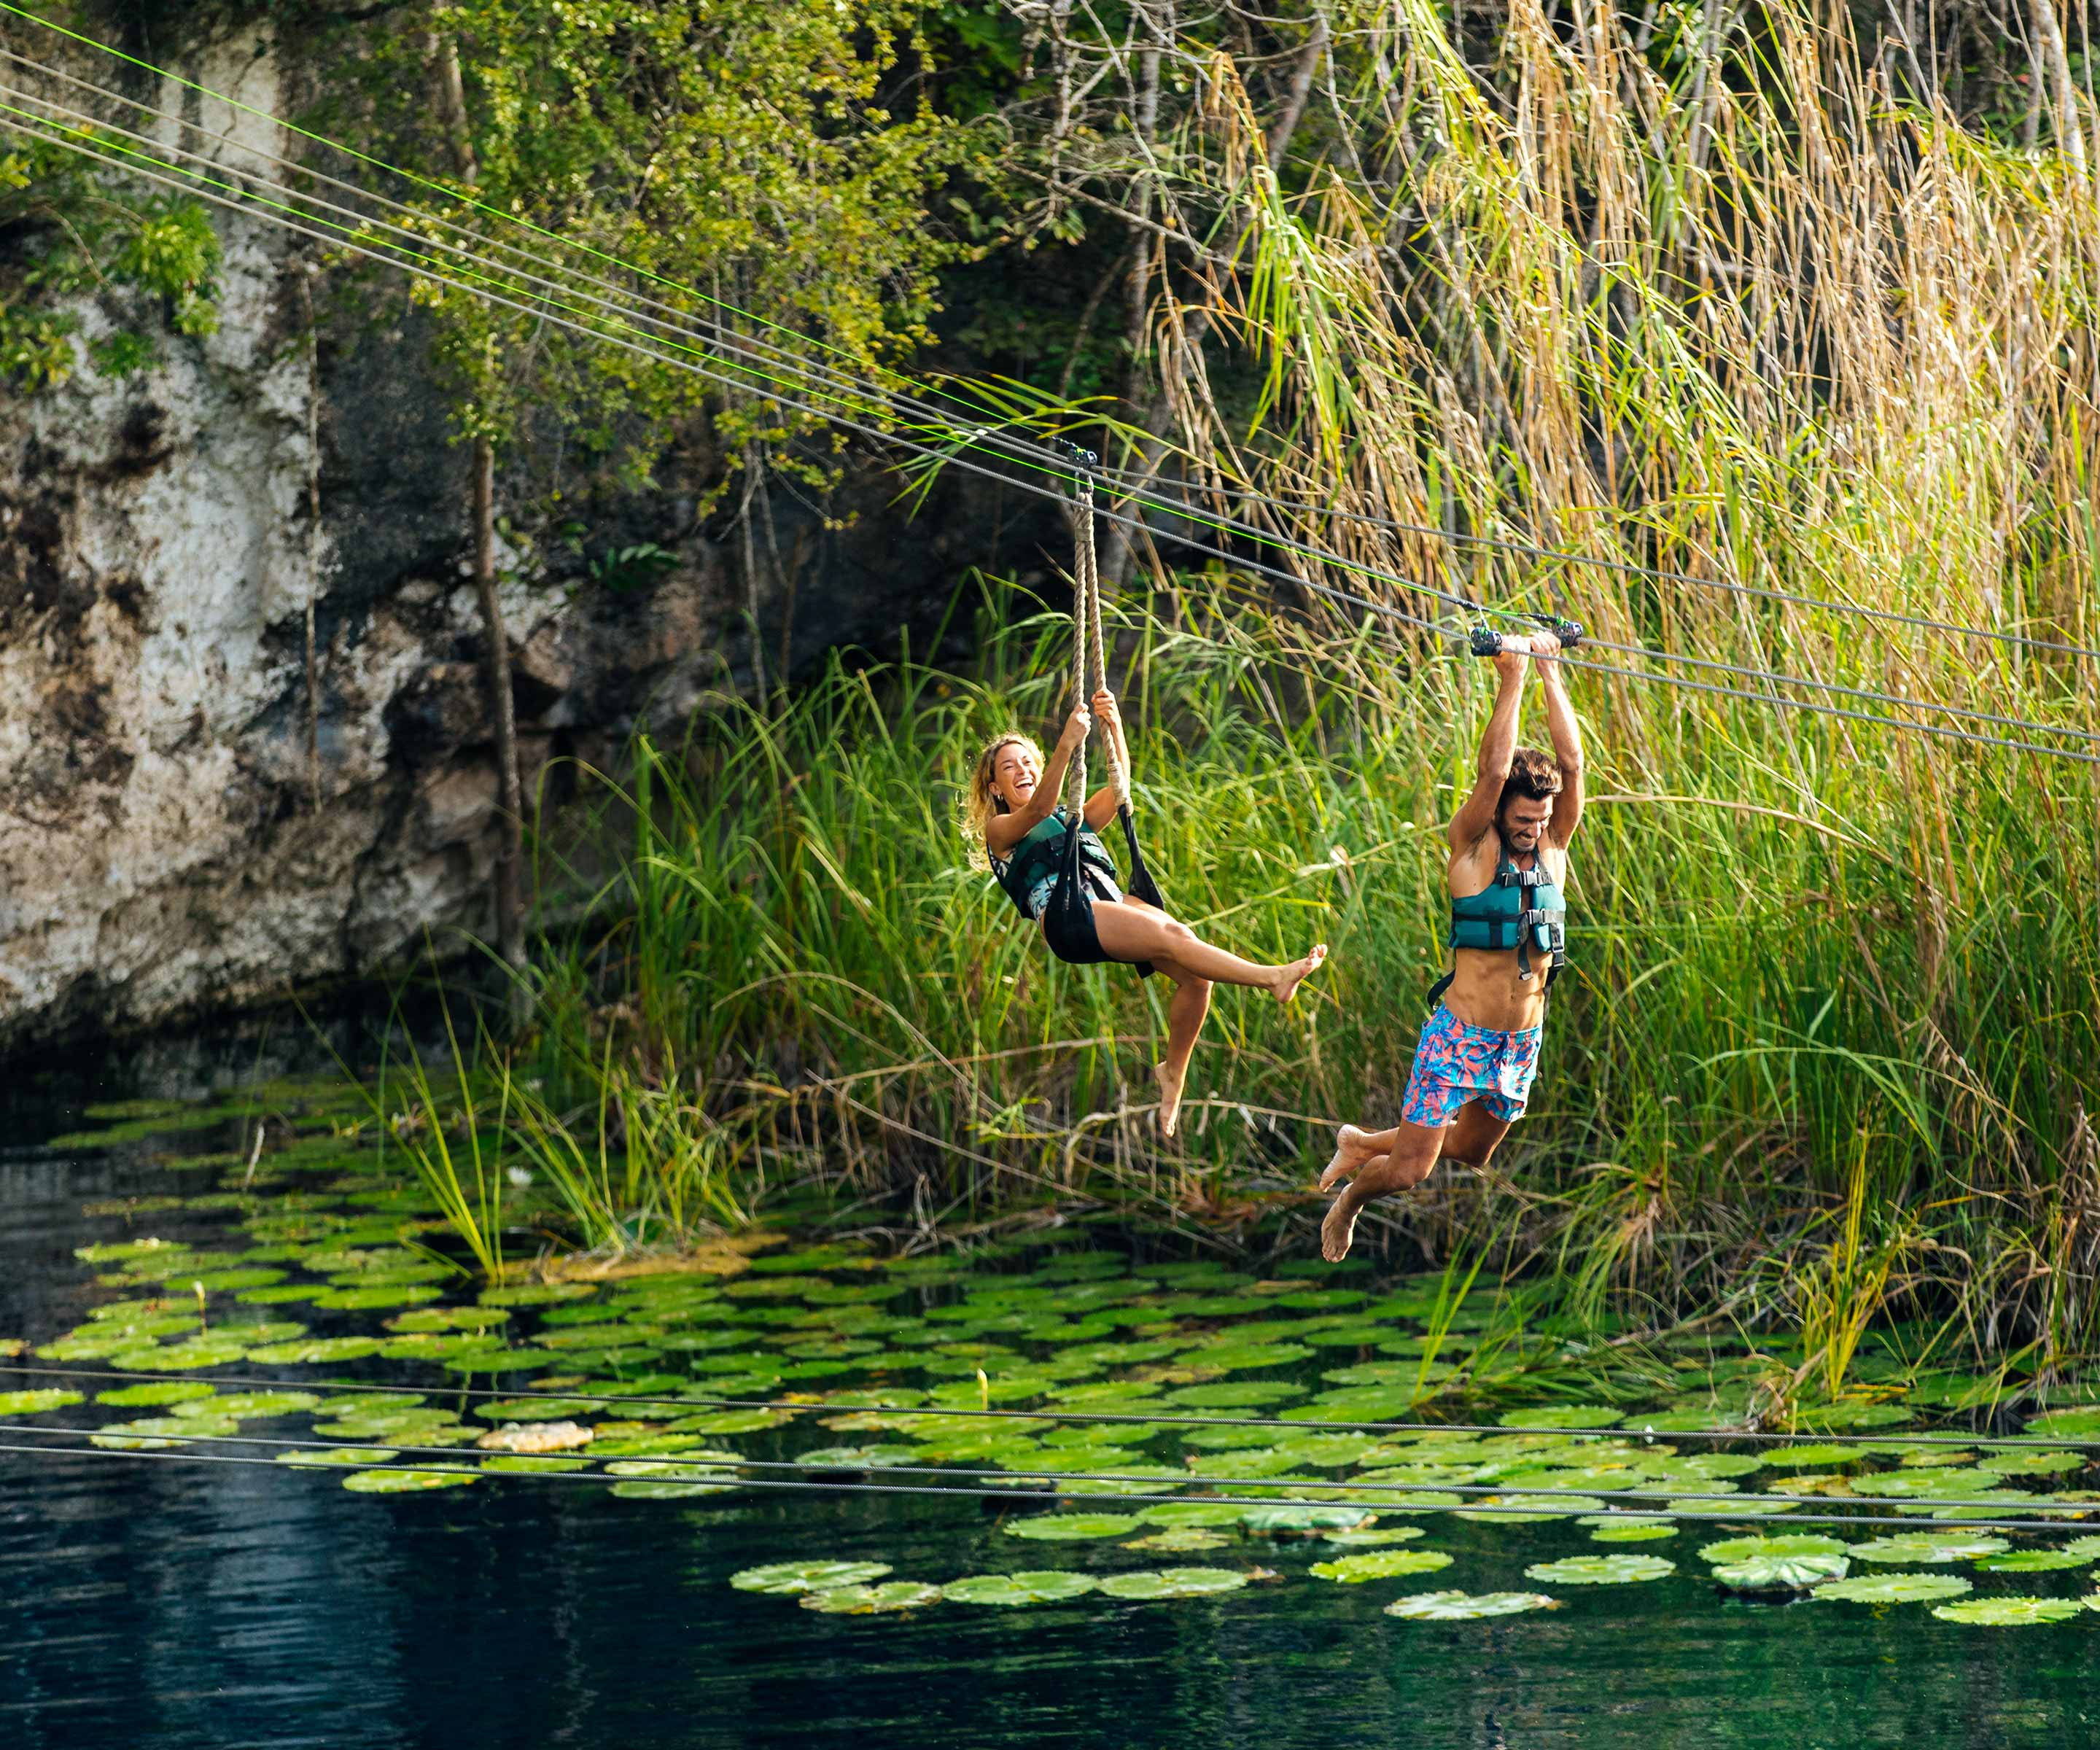 Enjoy the ziplines at the Iik cenote